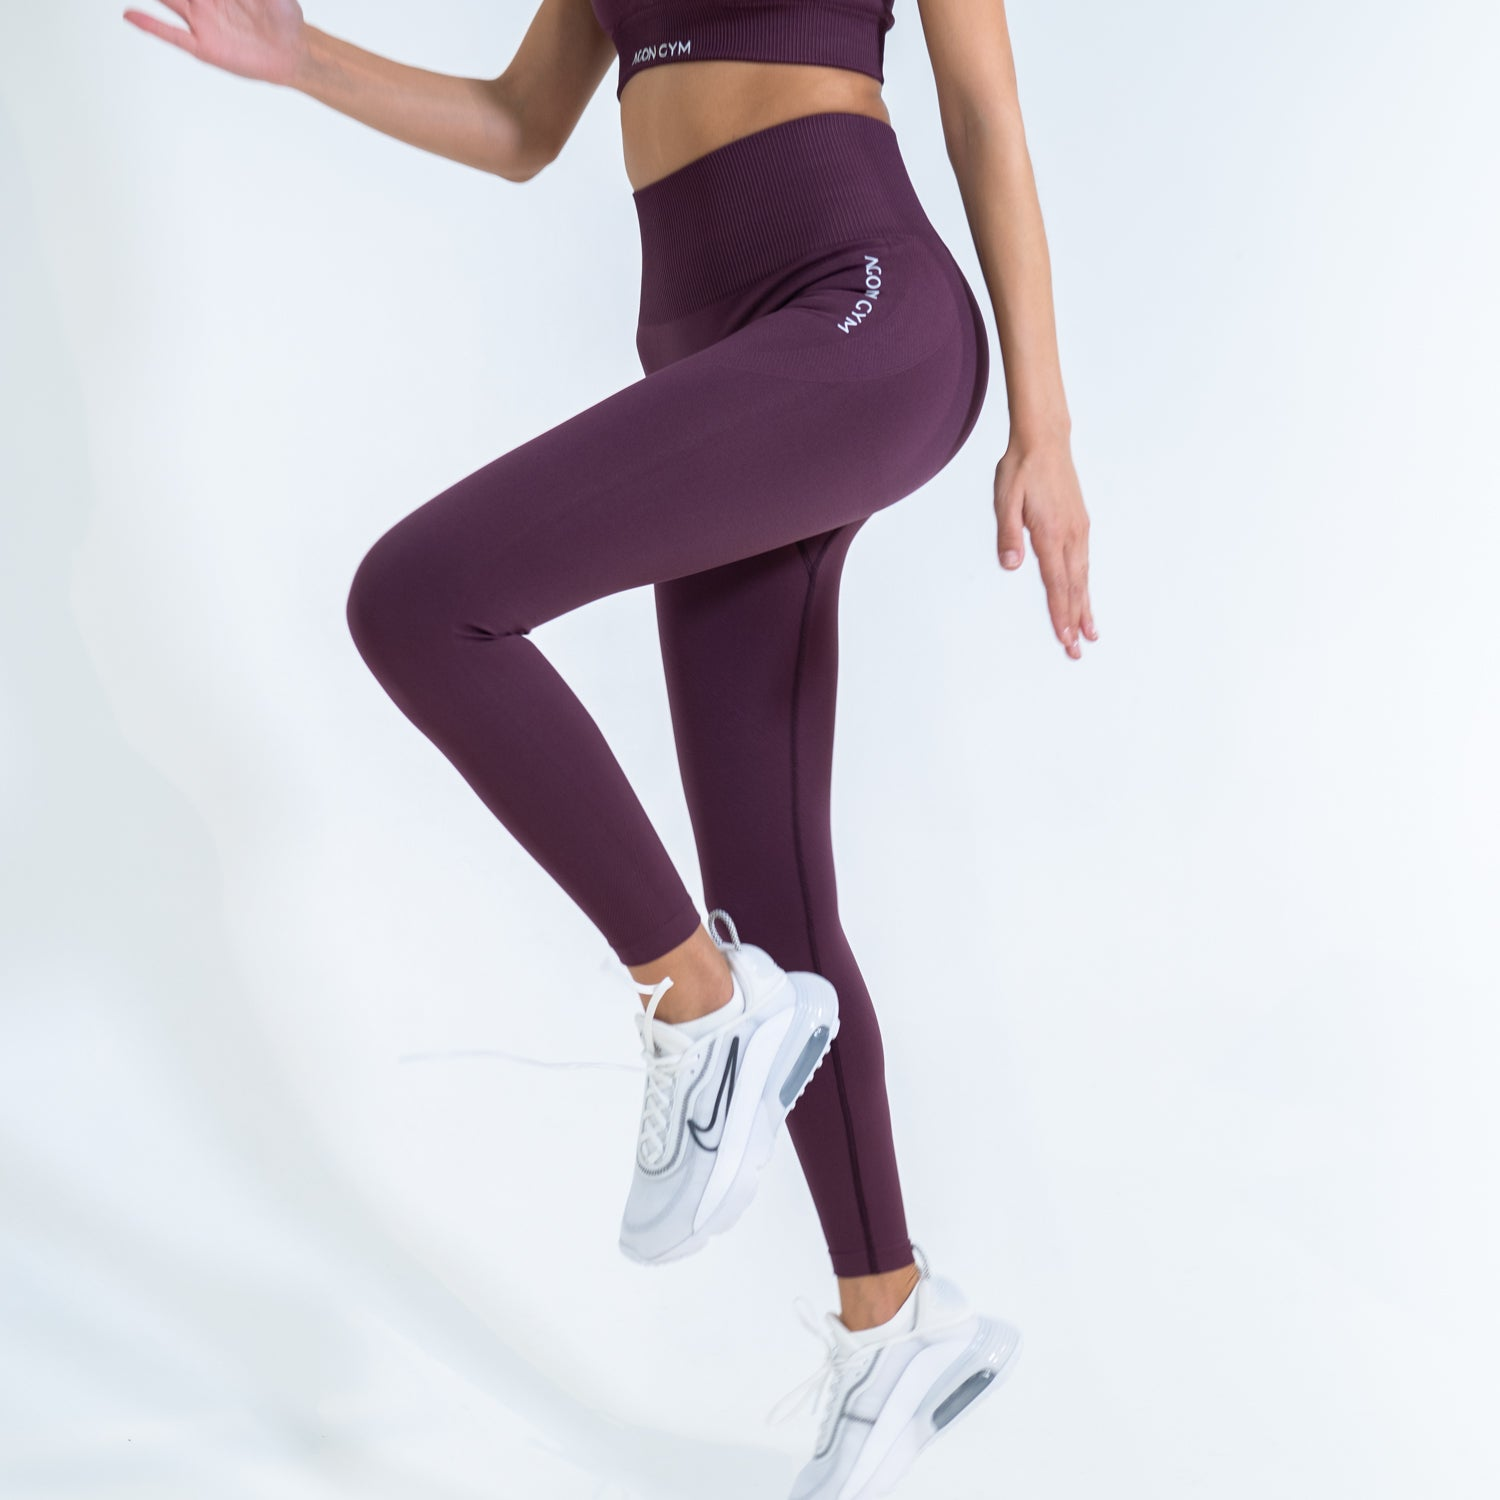 LEGGING CURE COMFORT - PURPLE